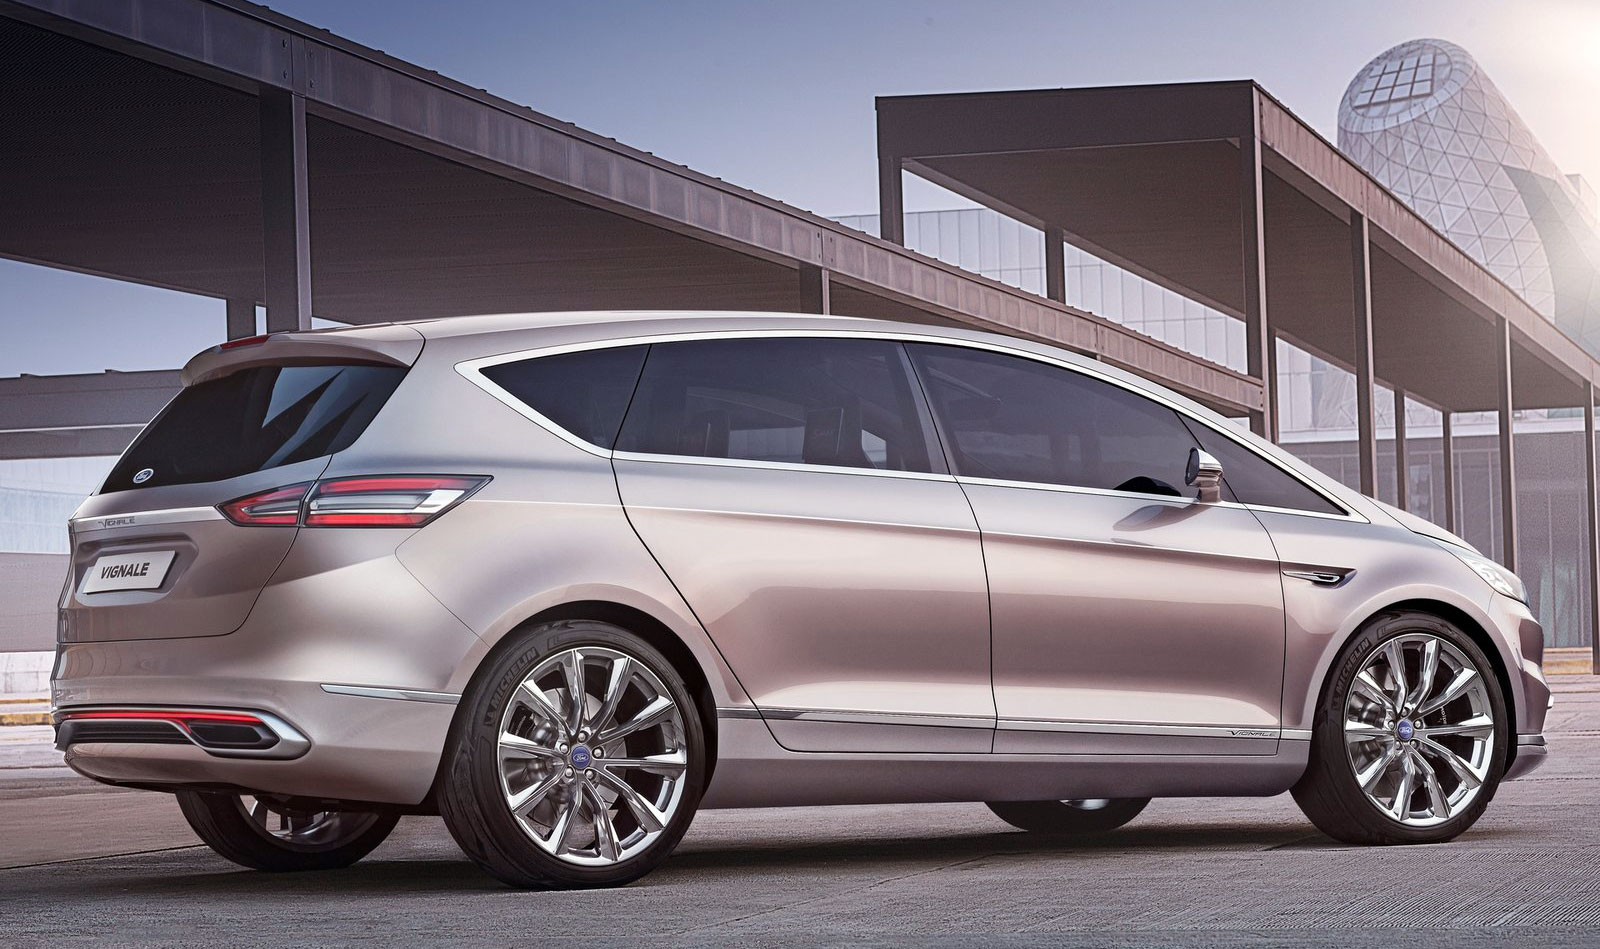 Back to Story: Ford S-Max Vignale Concept, second in the luxury line